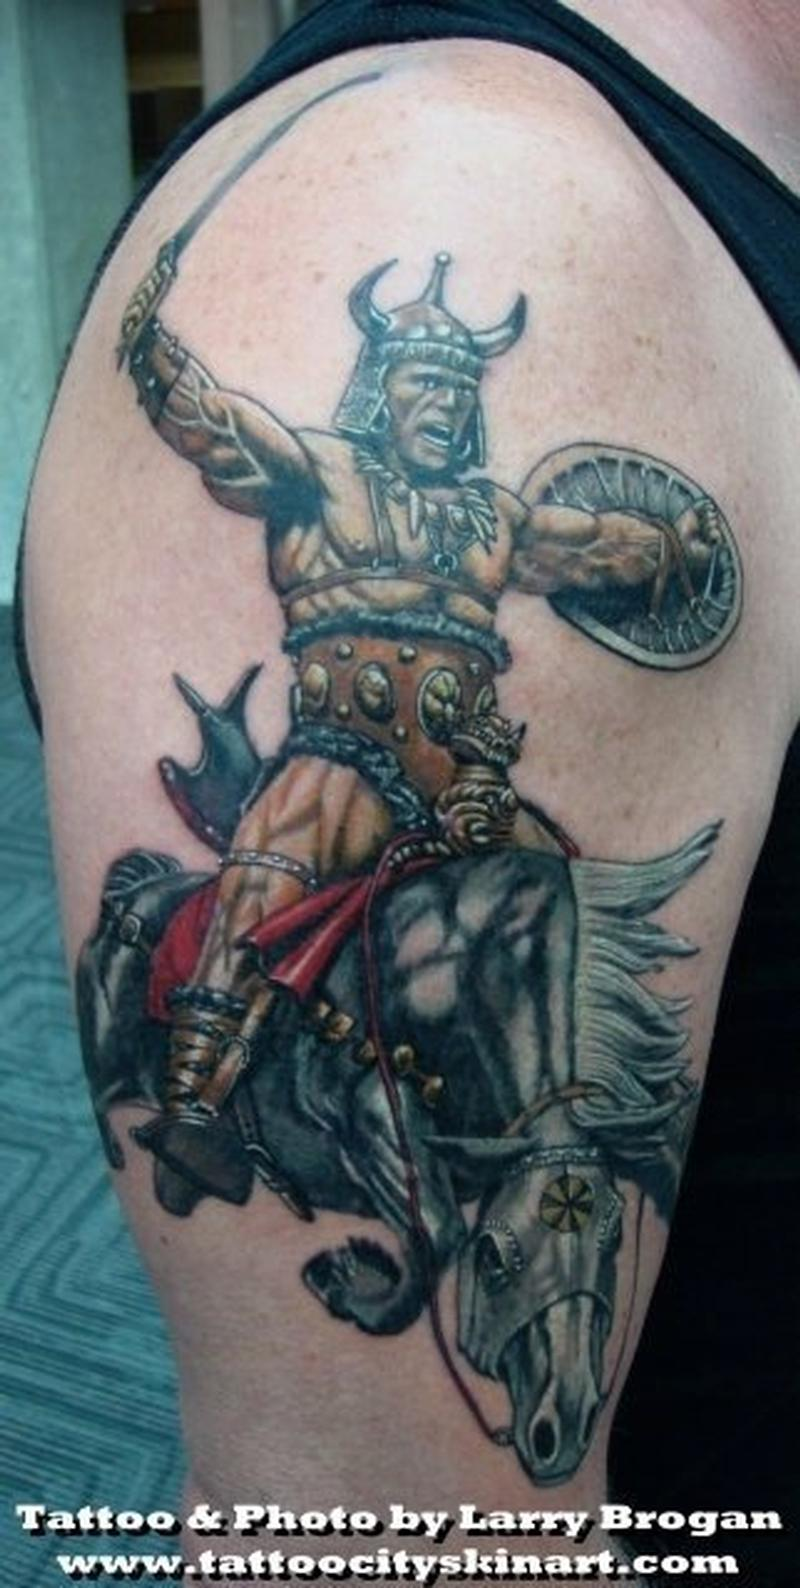 skin art a history of tattoos 2017-1-10 tattoos are an ancient form of art appearing in various  tattoos in ancient egypt may date back to  tattooed on one's skin would hardly have been out of.